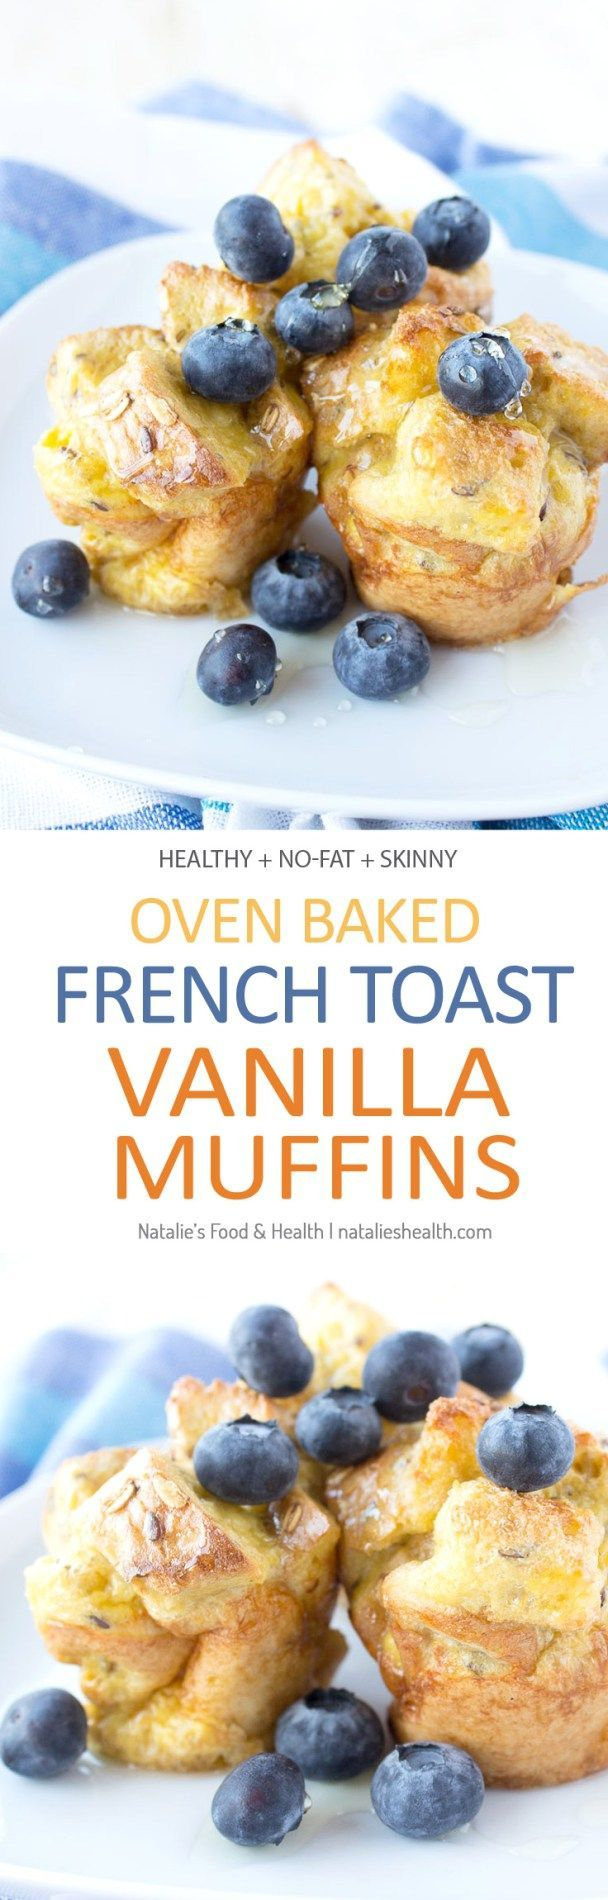 Oven baked French Toast Vanilla Muffins. Fat-free, delicious and kid-friendly. CLICK to read the recipe or PIN for later! Via://natalieshealth.com